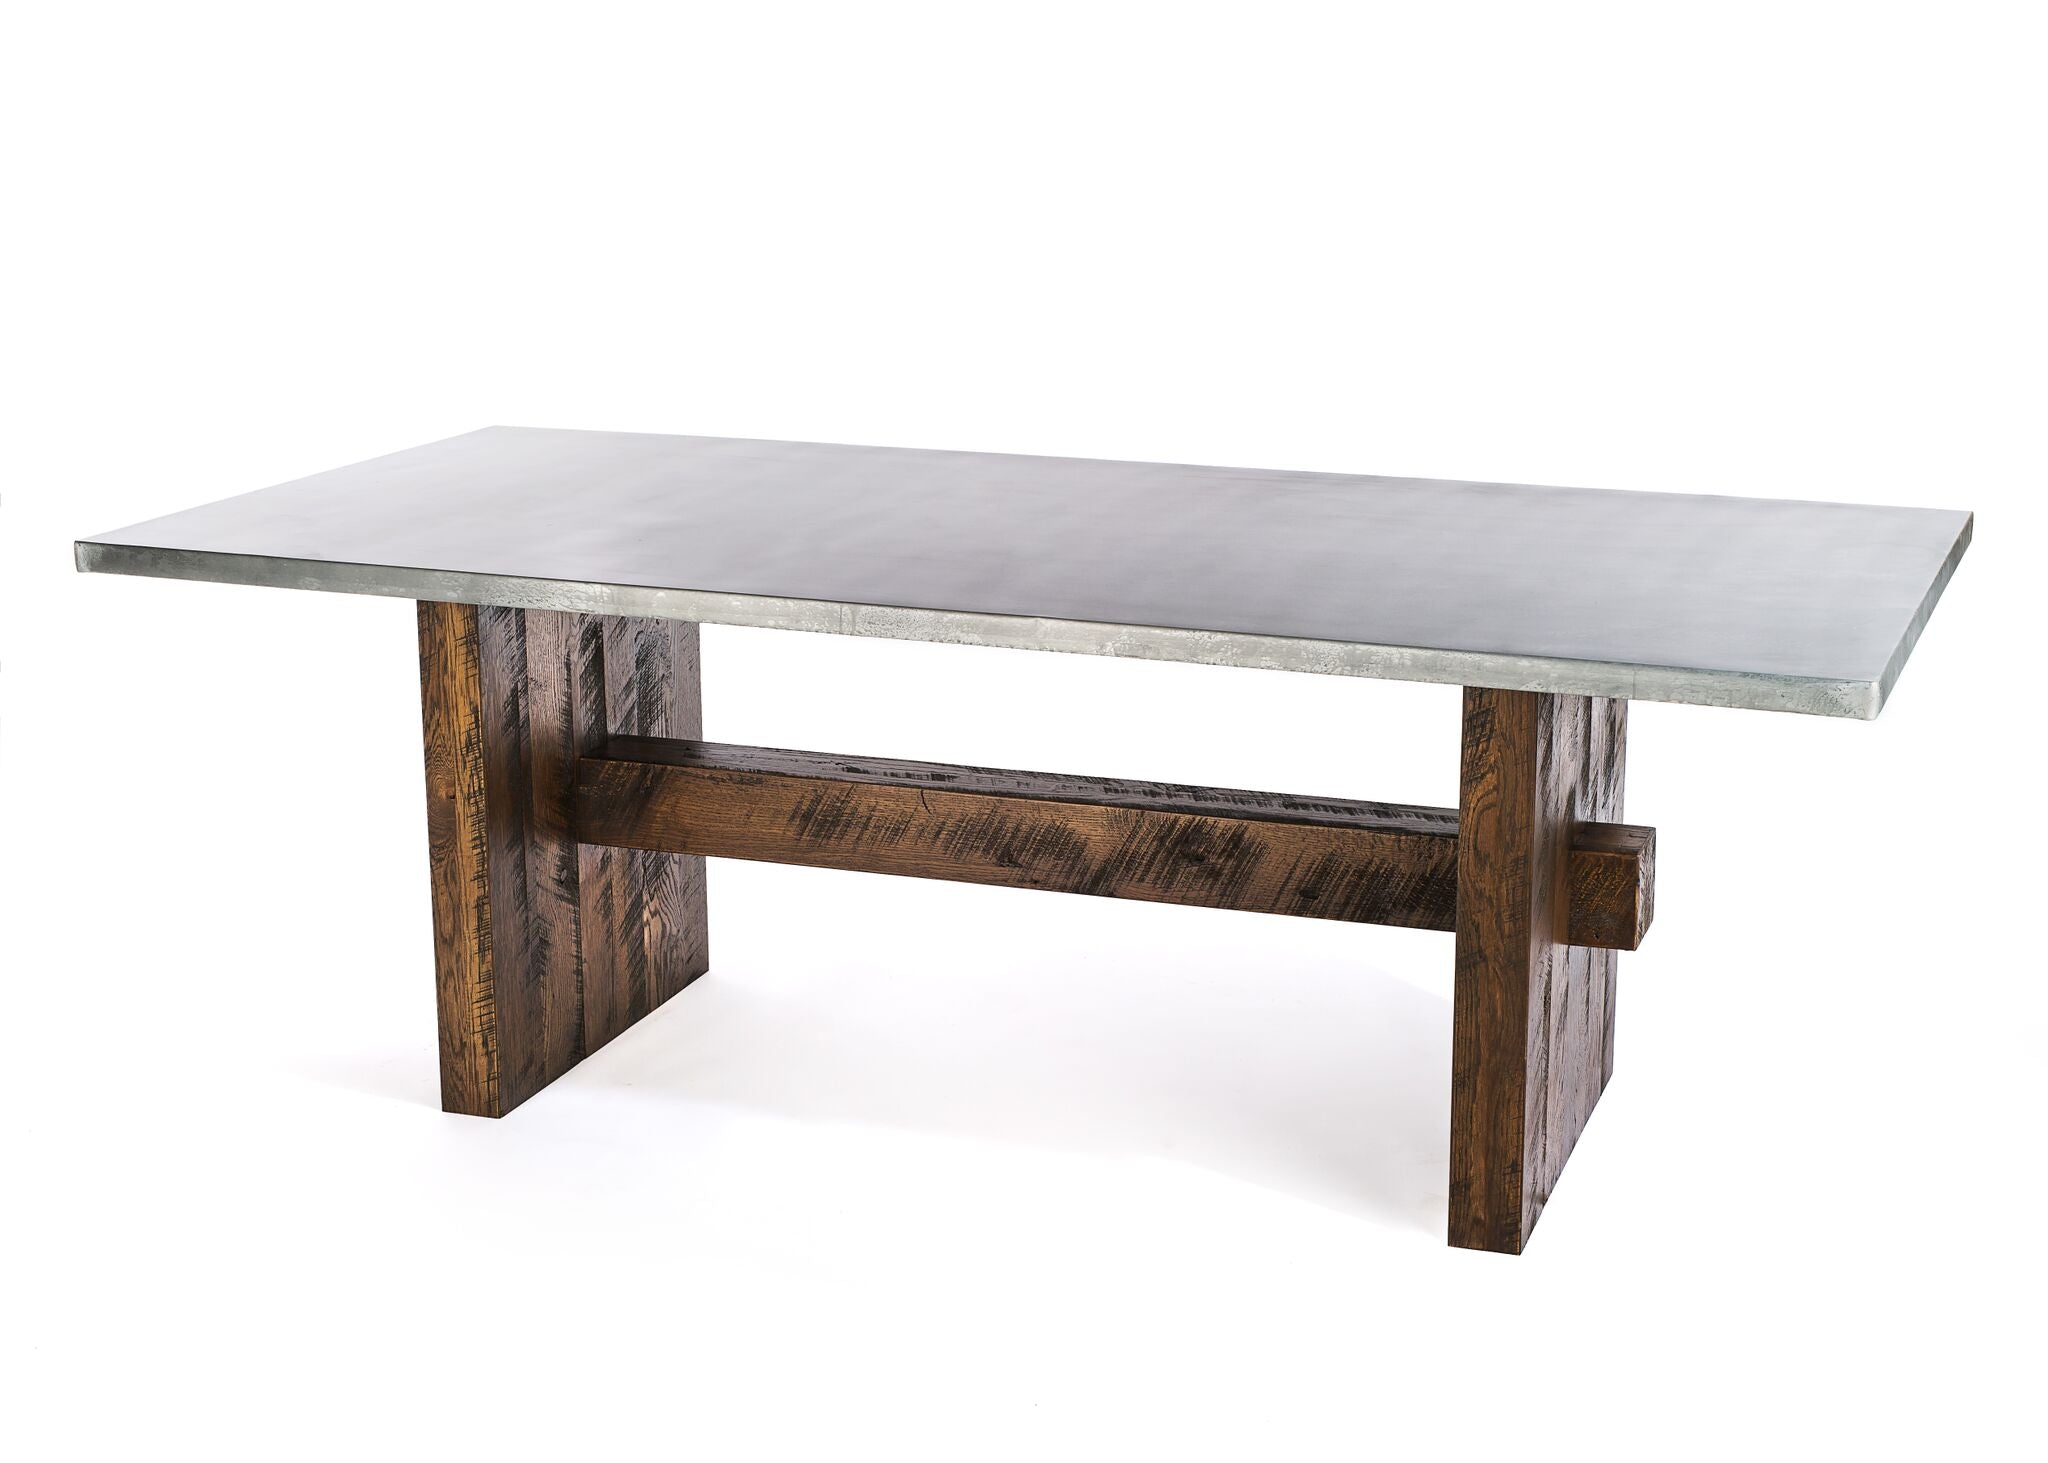 "Zinc Rectangular Table | Redford Trestle Table | CLASSIC | Natural Ash | CUSTOM SIZE L 60 W 37 H 30 | 1.5"" Standard